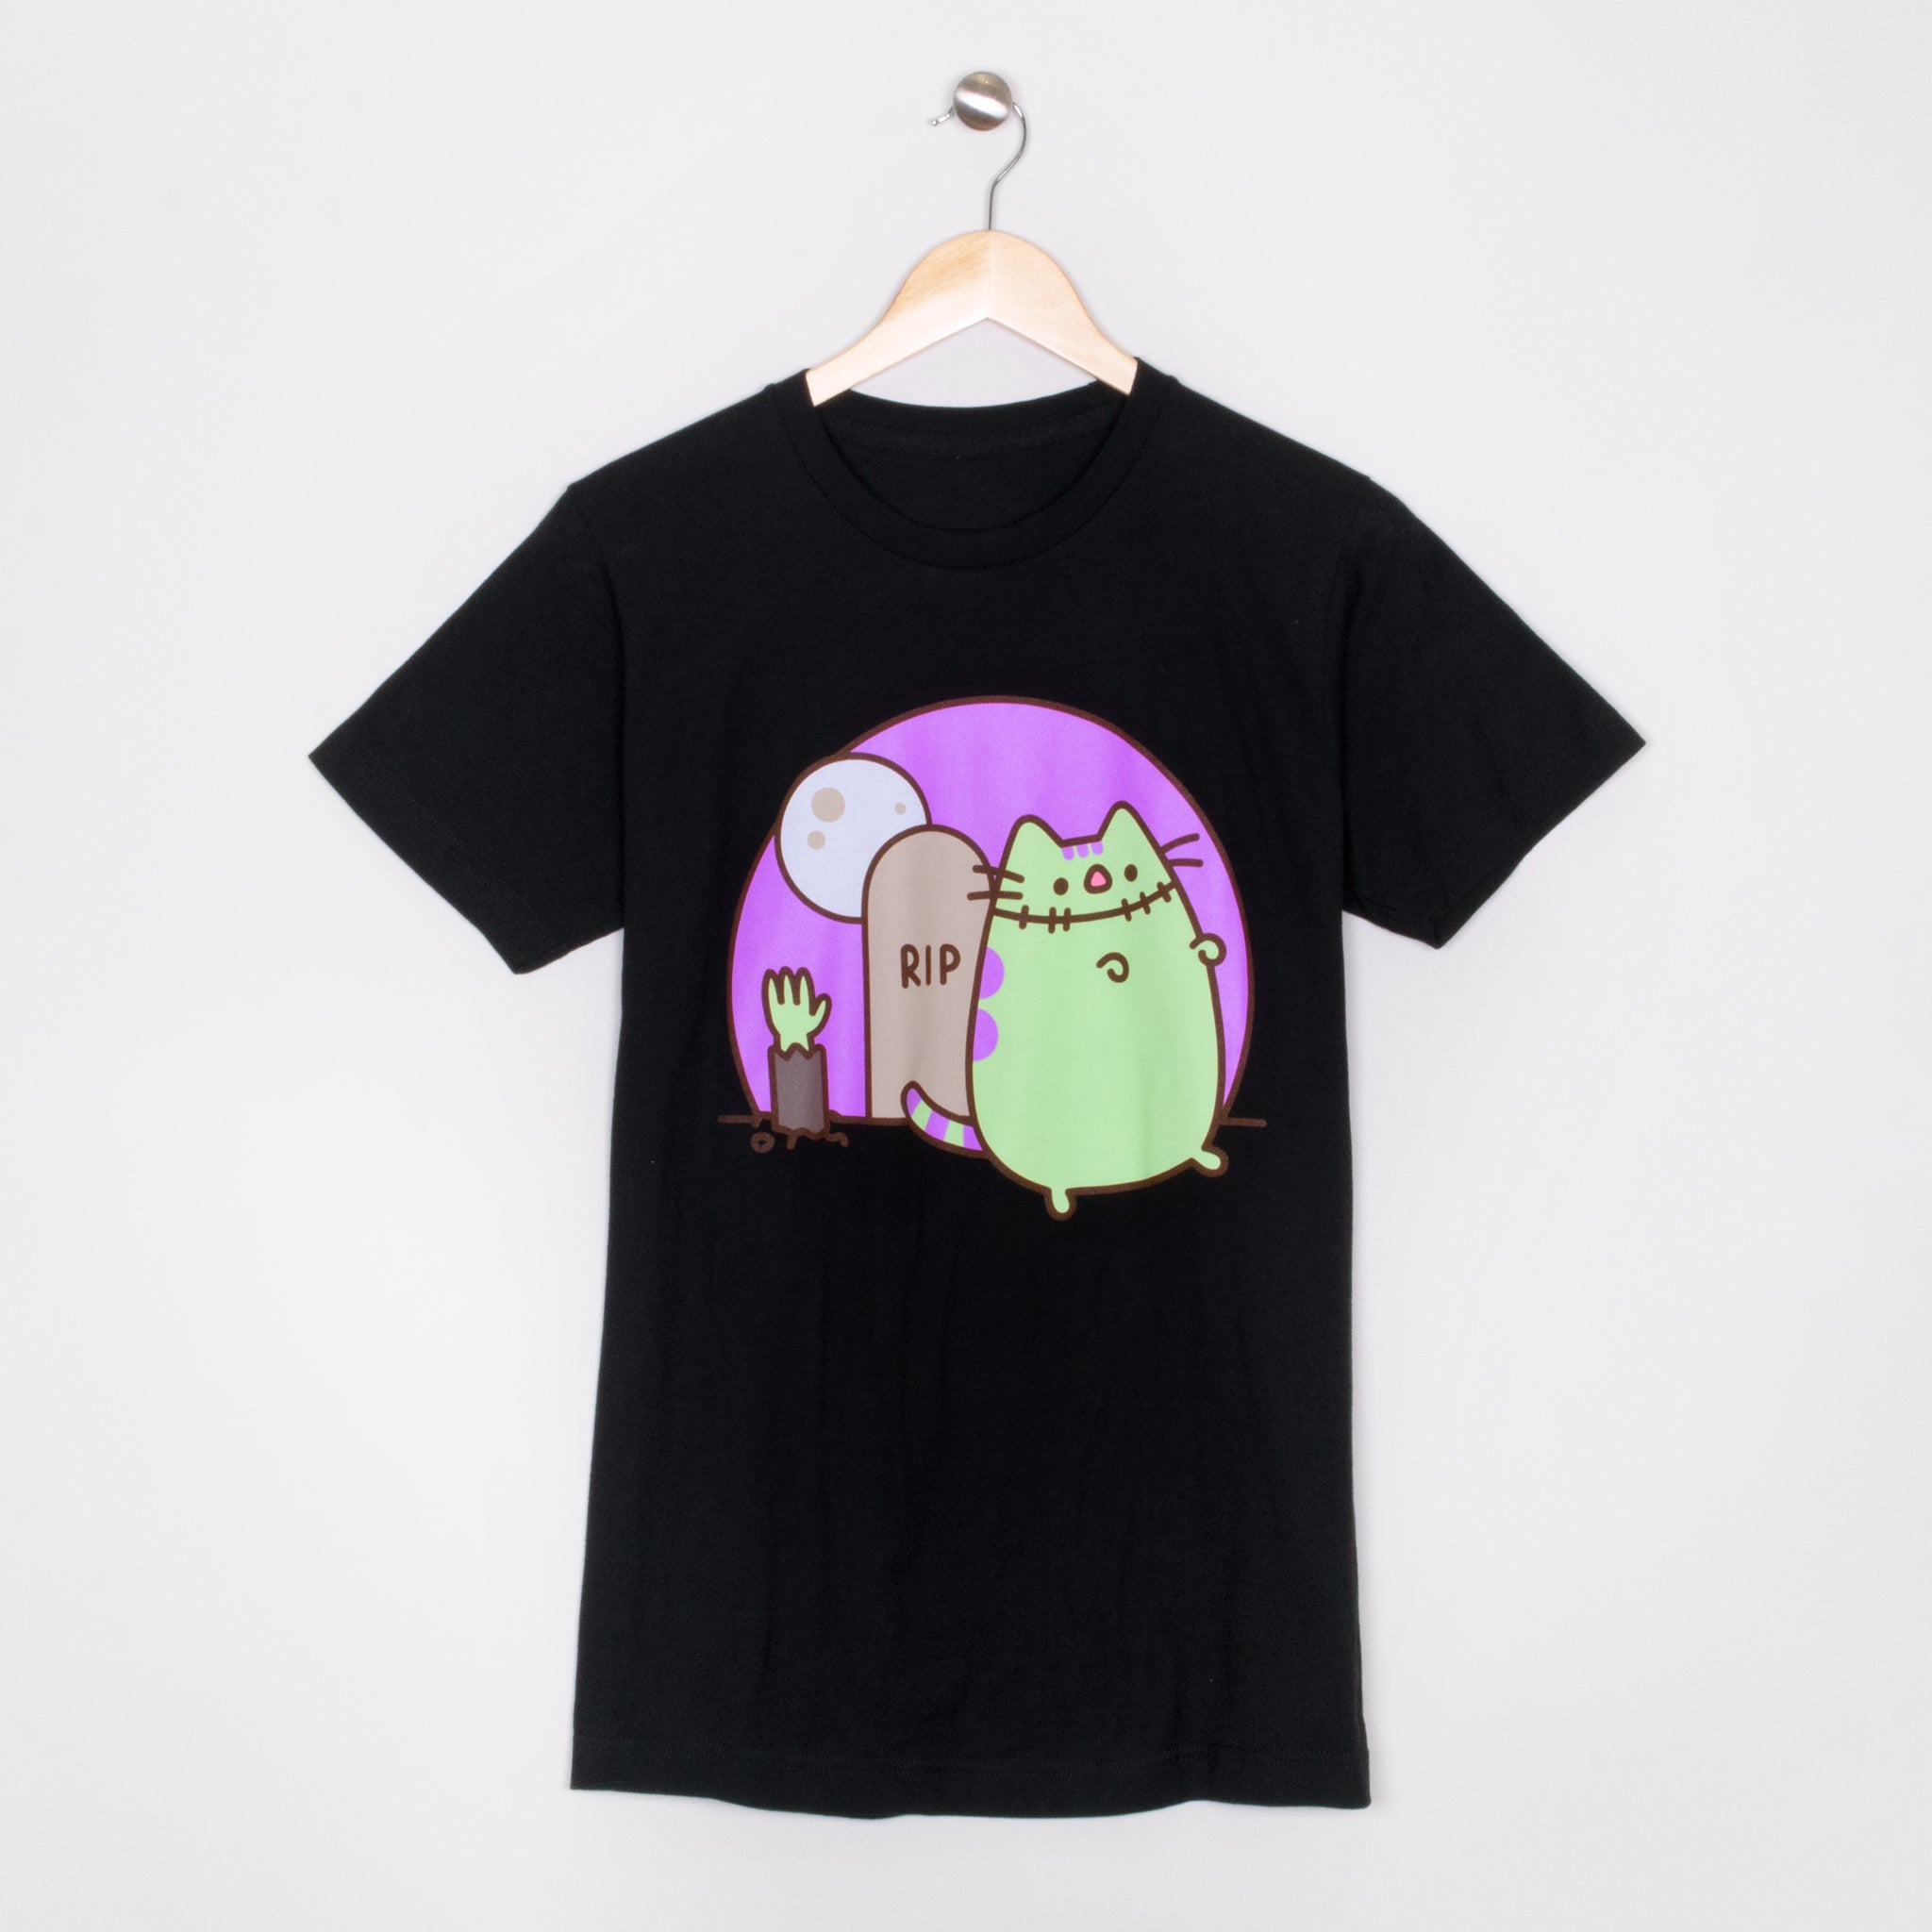 pusheen frankenpusheen zombie monster spooky halloween spoopy apparel t-shirt shirt cute cat culturefly